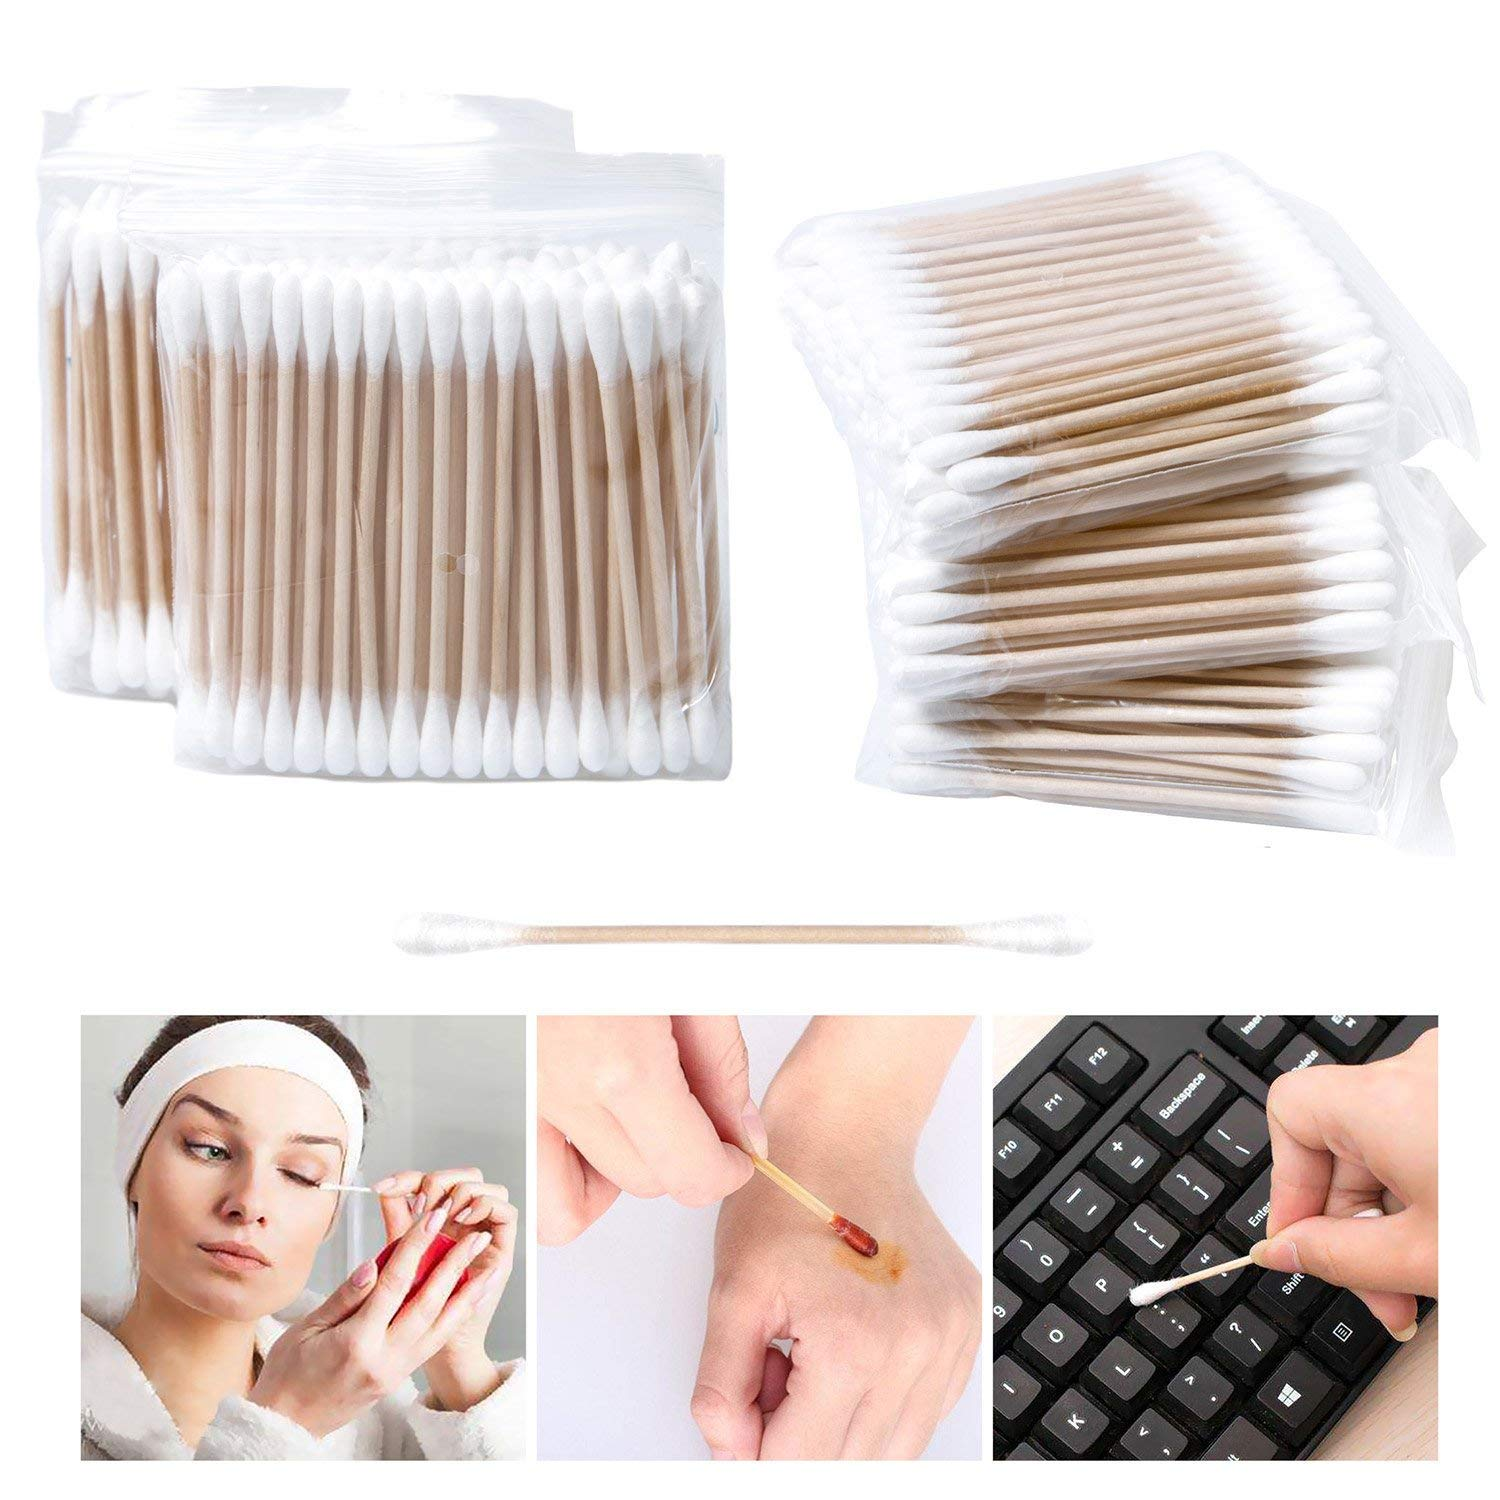 Lot de 500 Cotons-tiges avec manche en bois pour le maquillage Clean Care double tê te Bâ tons de maquillage yiqi